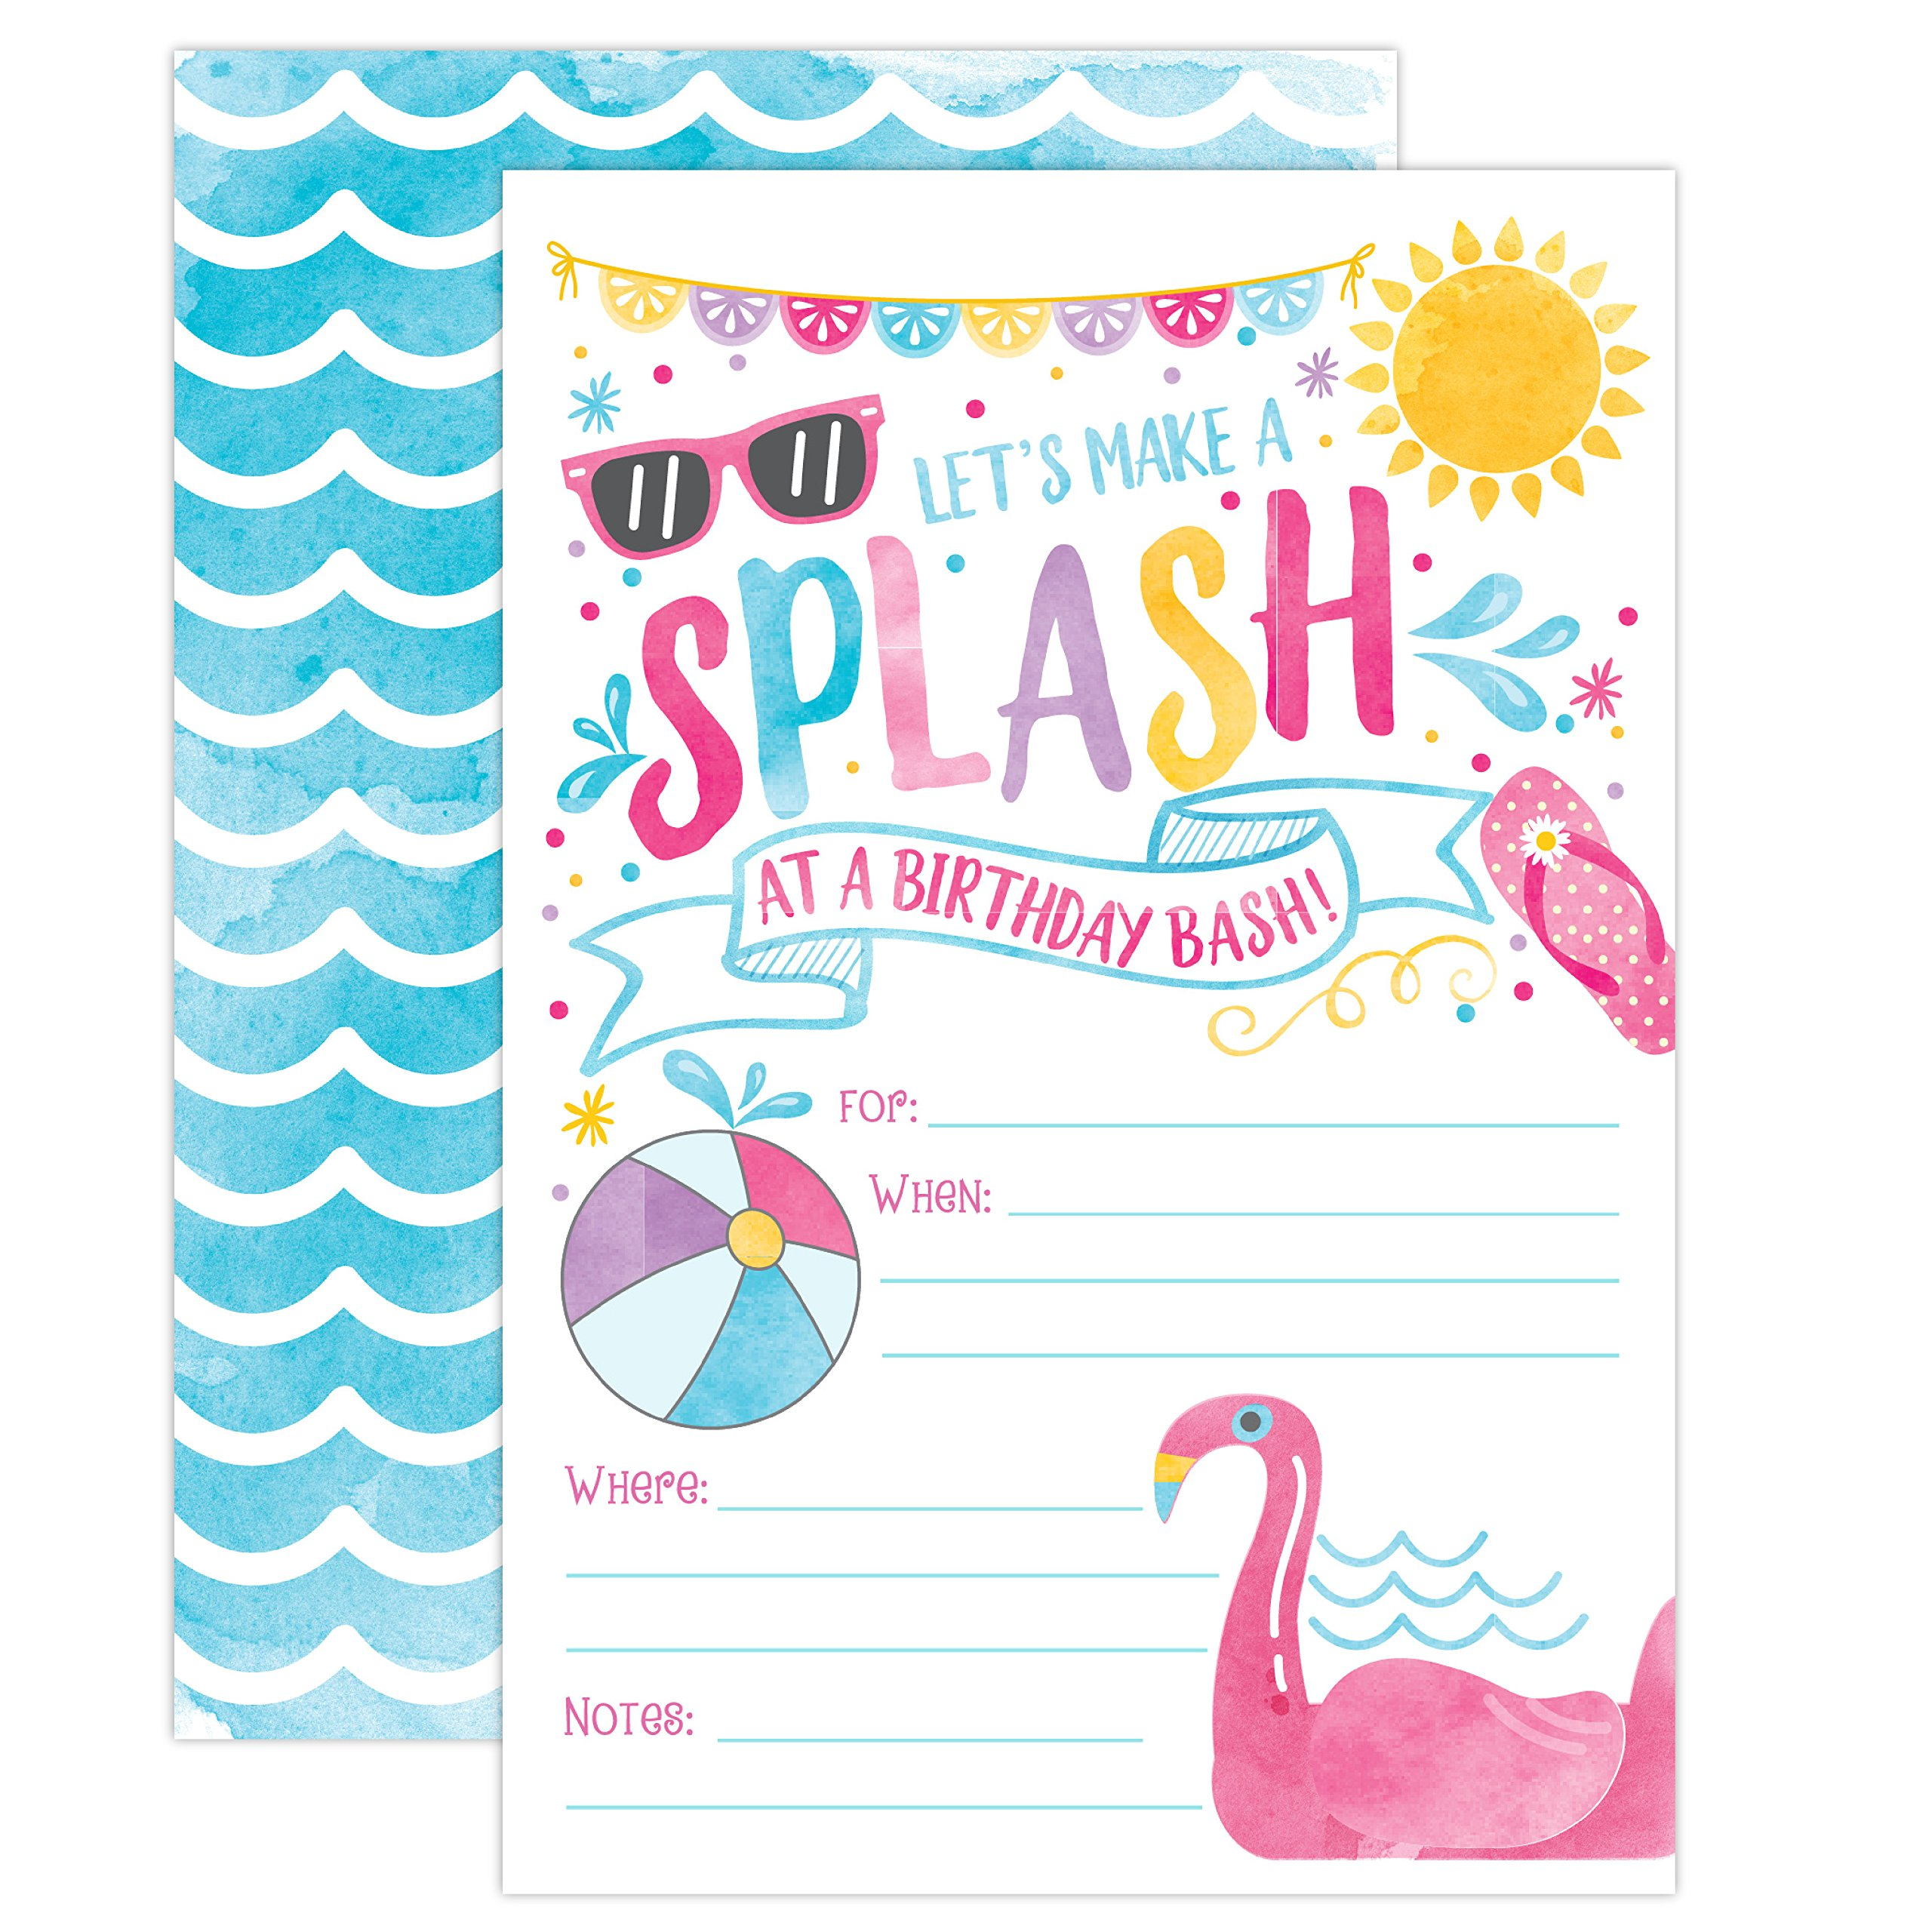 Girl Pool Party Birthday Invitations, Summer Pool Party Bash, Splash Pad, Water Park Invites, 20 Fill In Pool Party Invitations With Envelopes by Your Main Event Prints